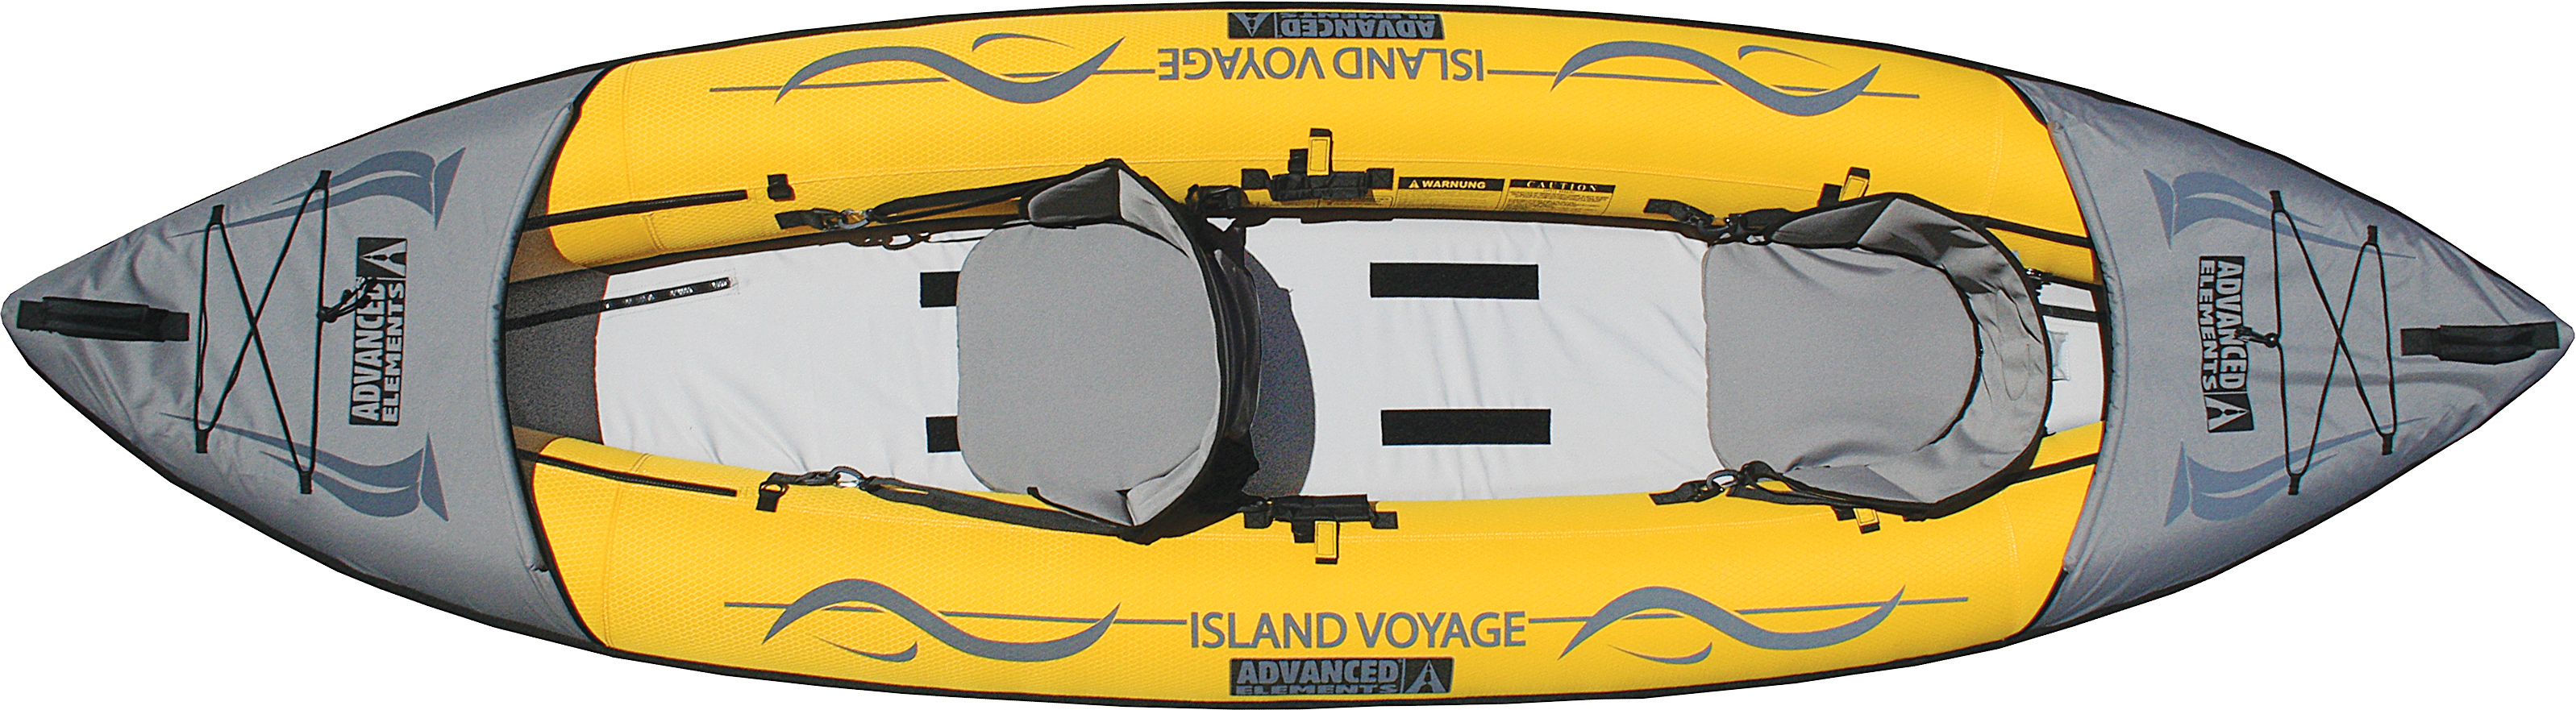 Kayaks: Island Voyage 2 by Advanced Elements - Image 4512